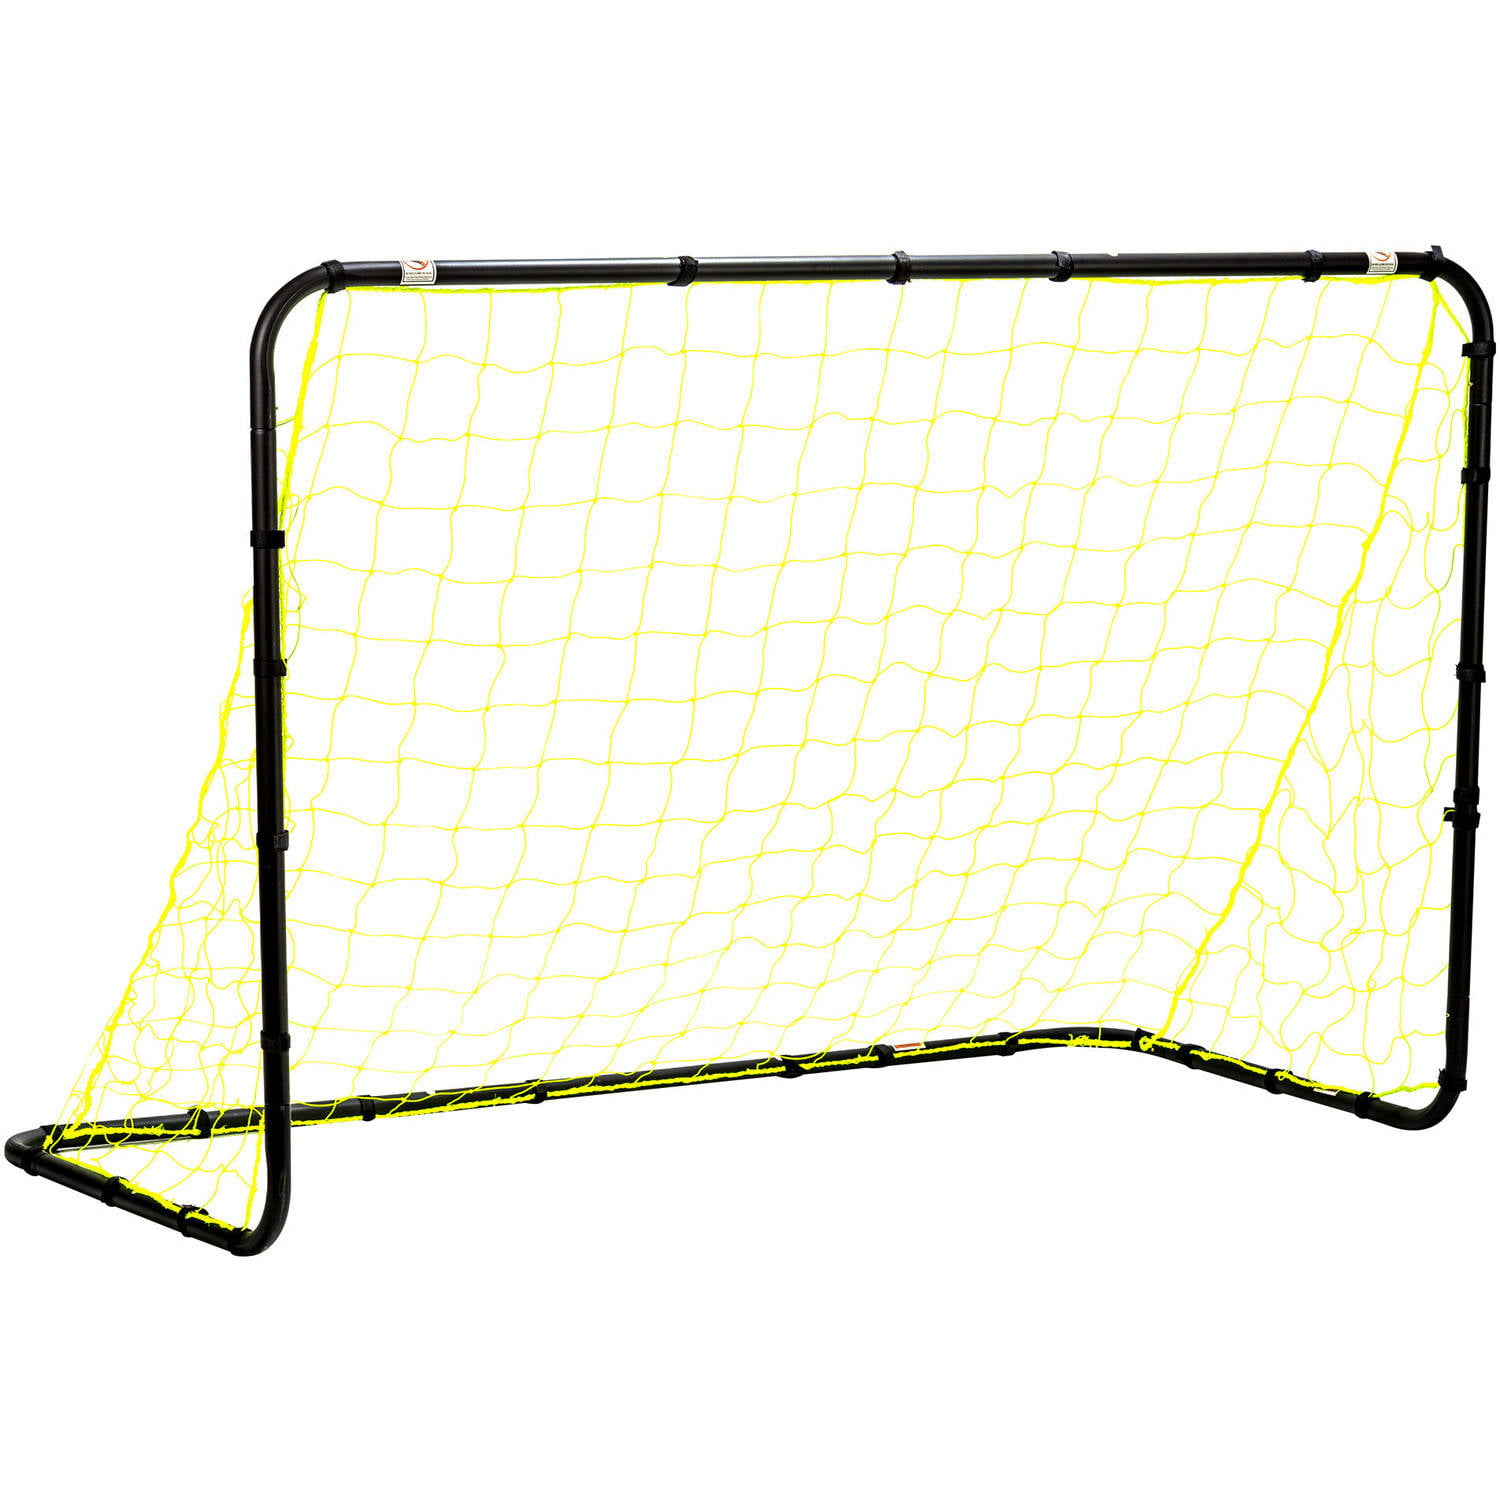 Franklin Sports Competition Soccer Goal by Franklin Sports, Inc.